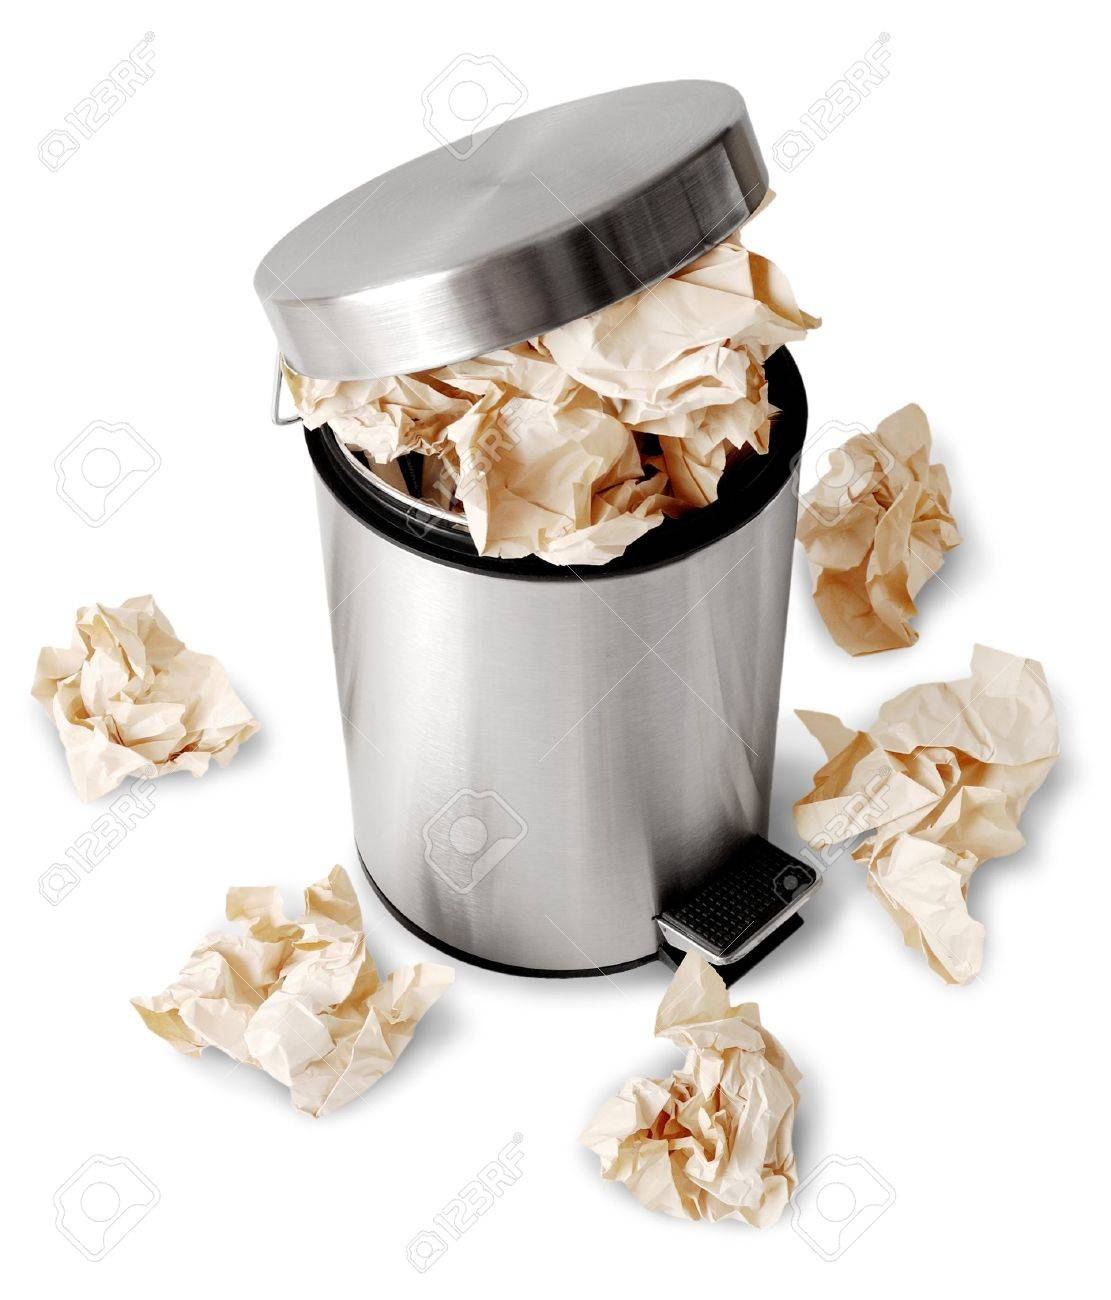 Wastebasket full up with crumpled paper. Isolated on white background Stock Photo - 3641081